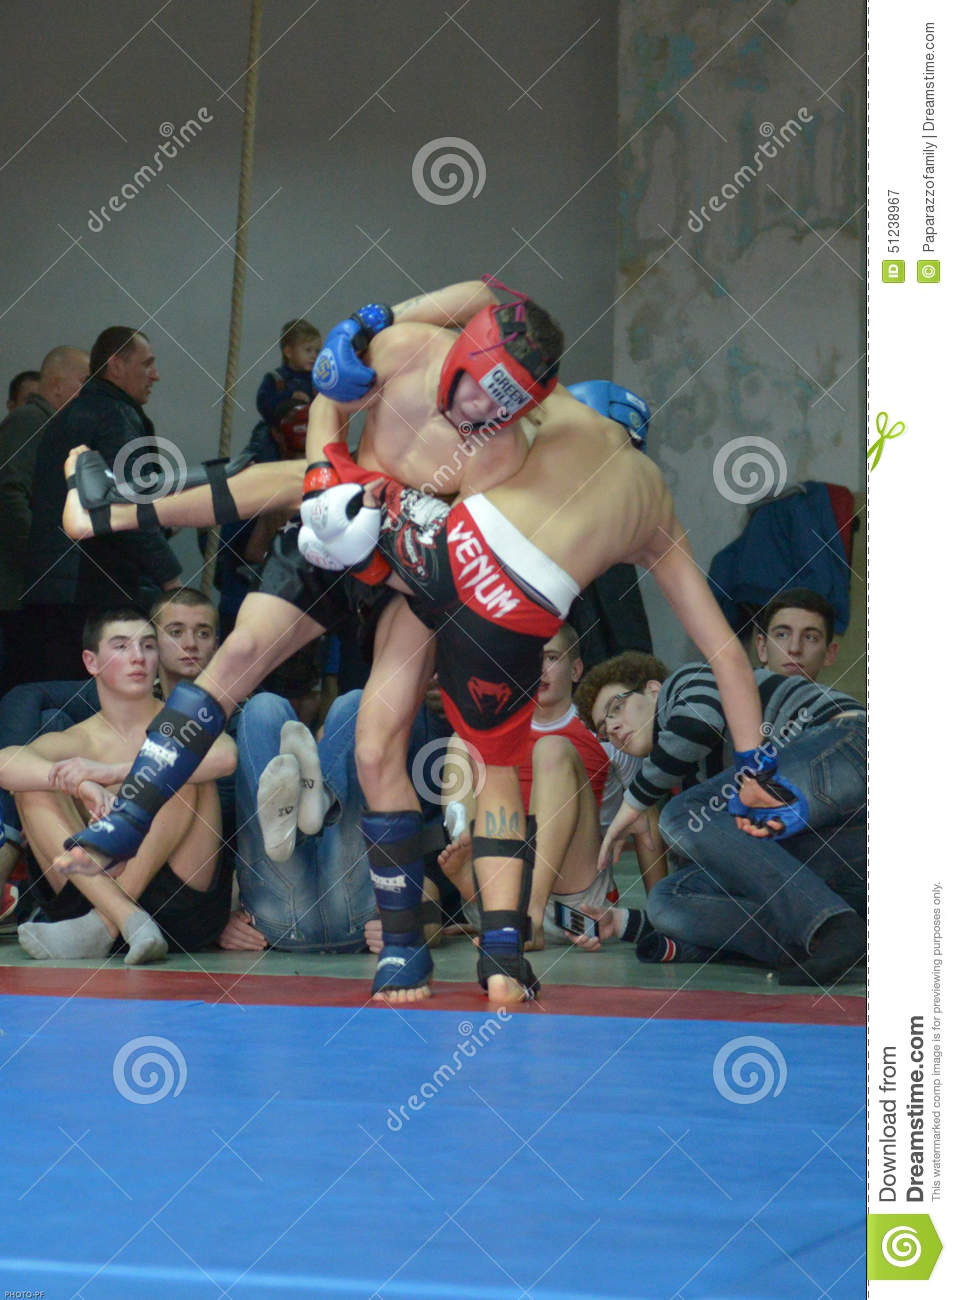 Championship of mixed martial arts (MMA) passed On February 21, sports ...